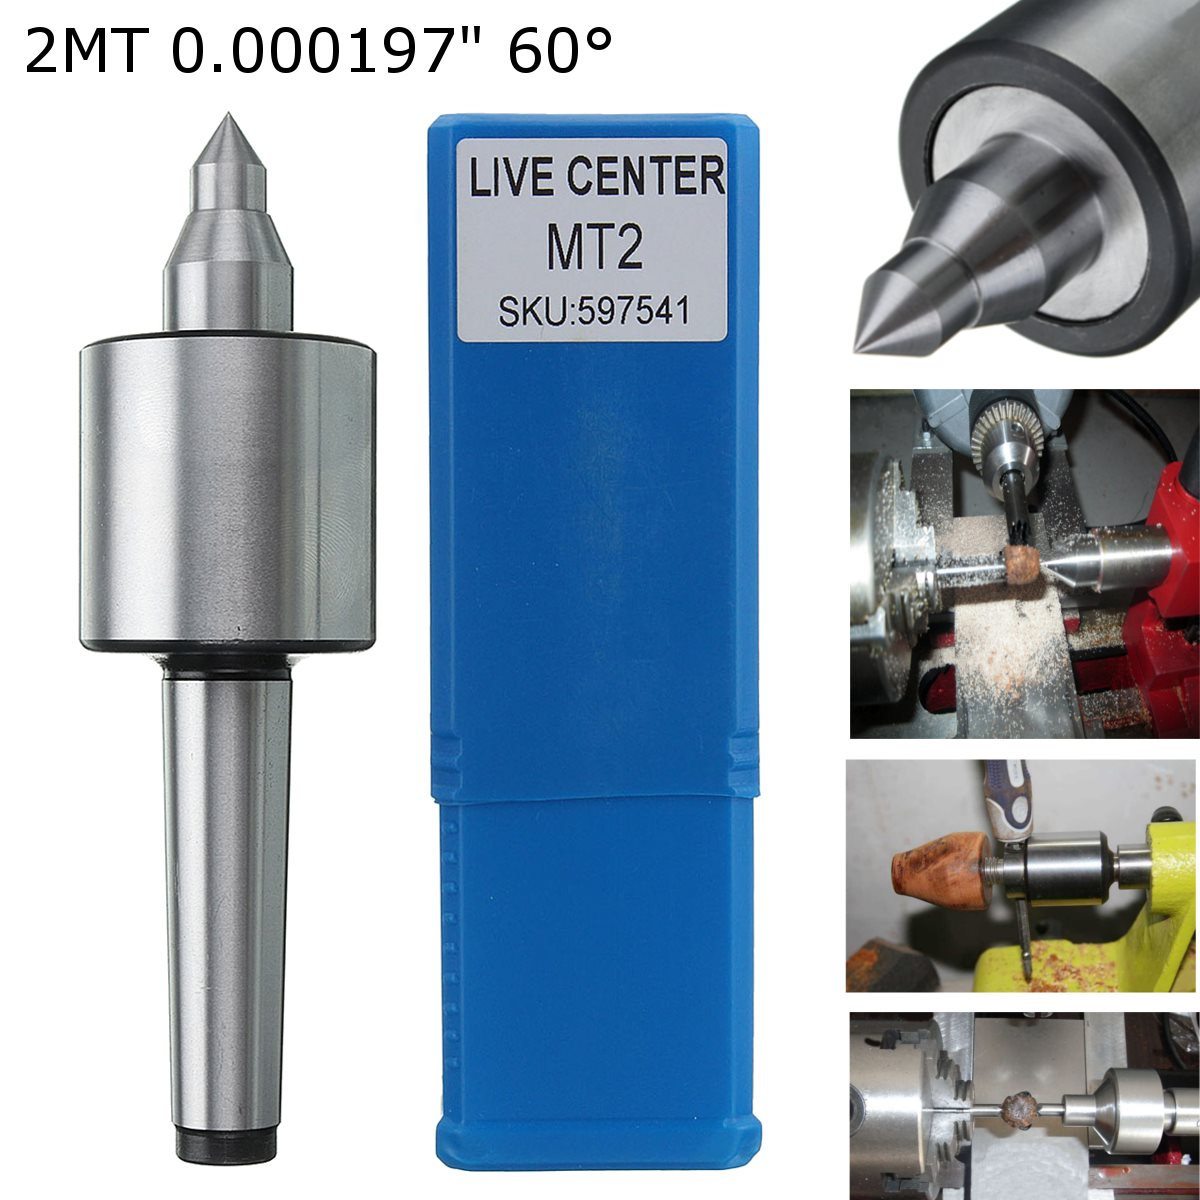 MT2 Spindle Lathe Live Center Morse Taper CNC Tool 0.000197 Inch Precision